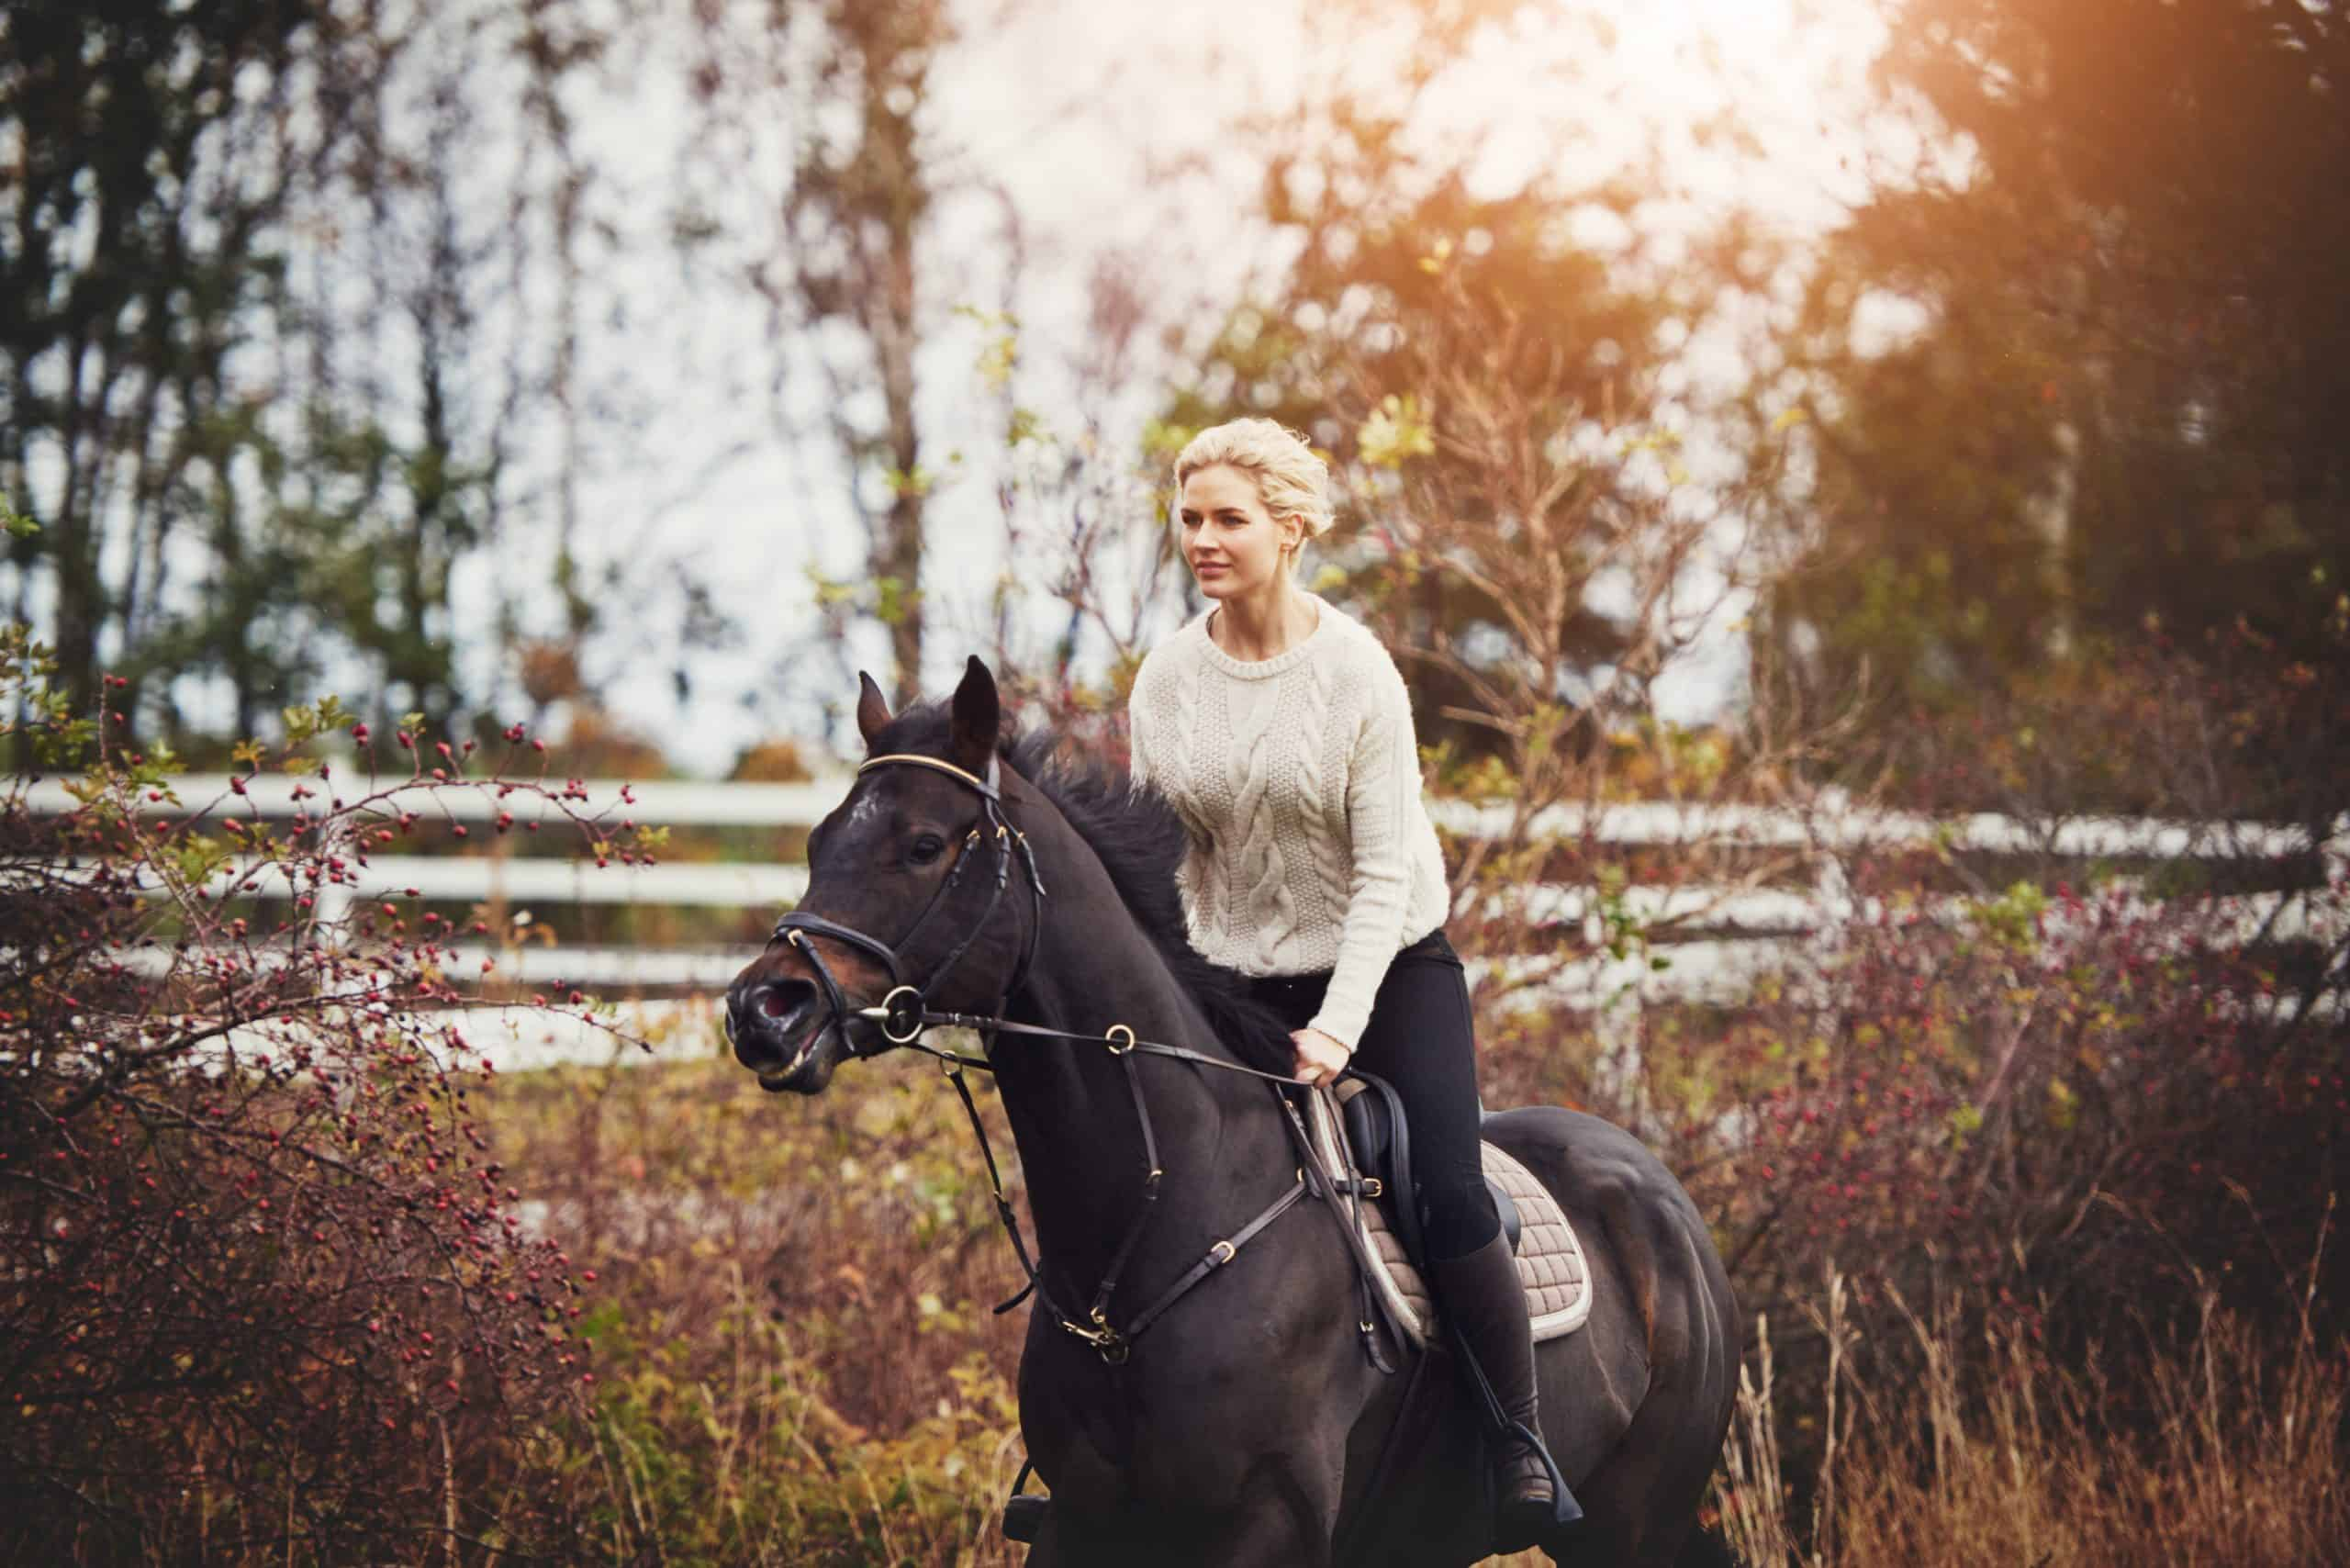 Smiling young woman in riding gear galloping her chestnut horse alone through a field in autumn